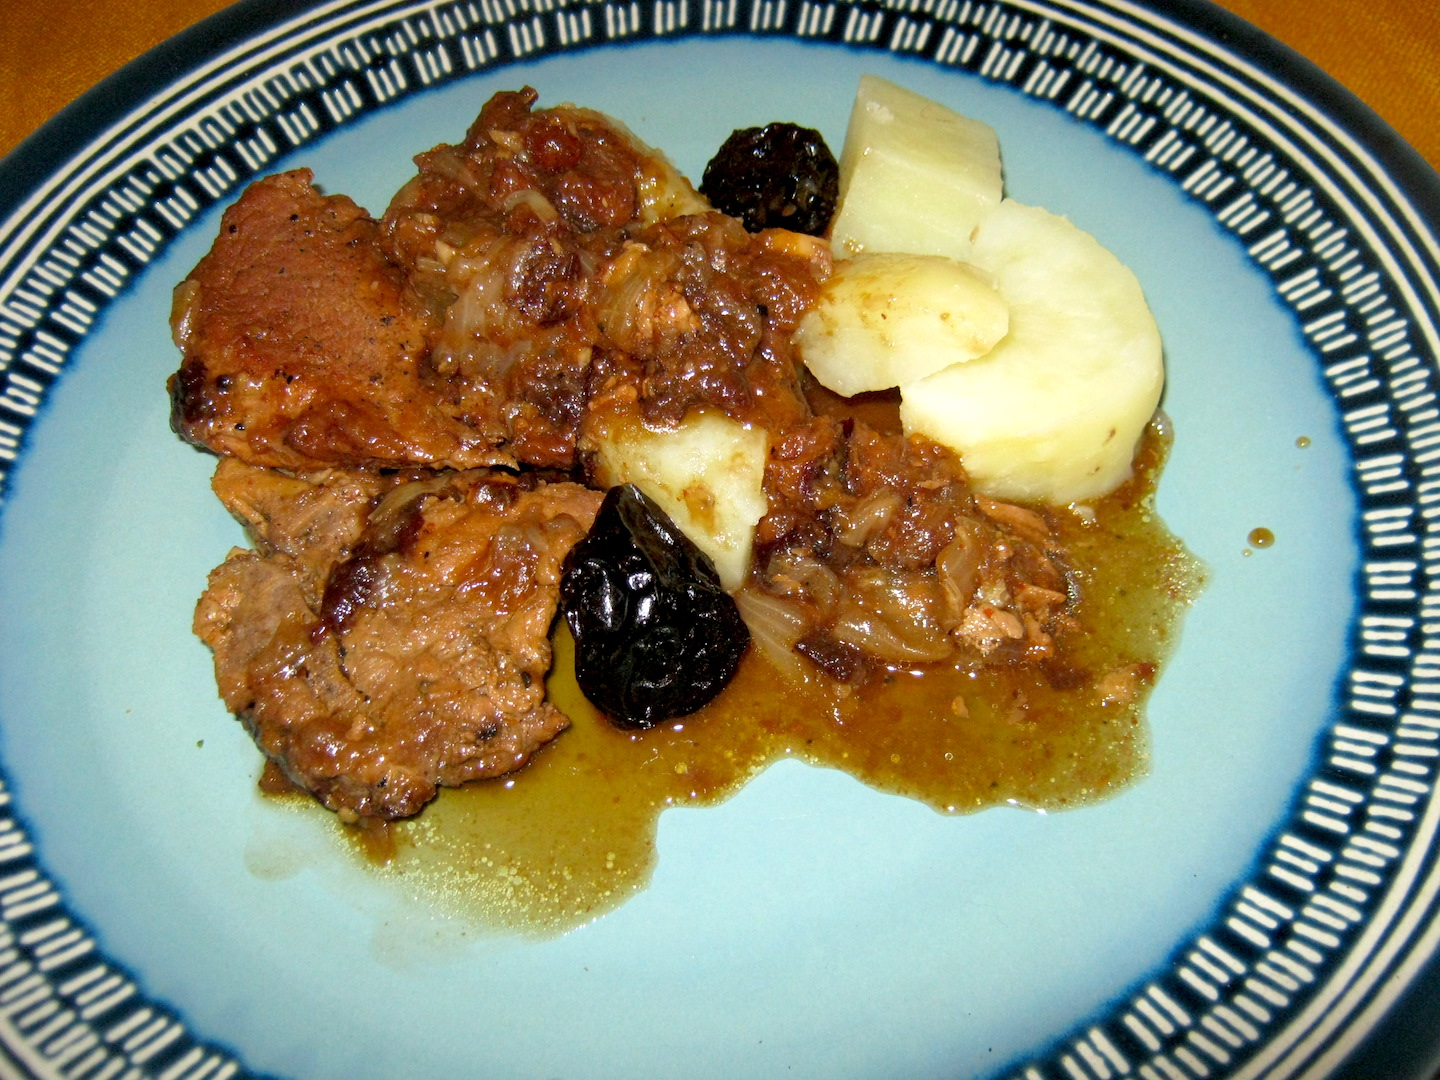 Pork chops in dried prune sauce on a plate